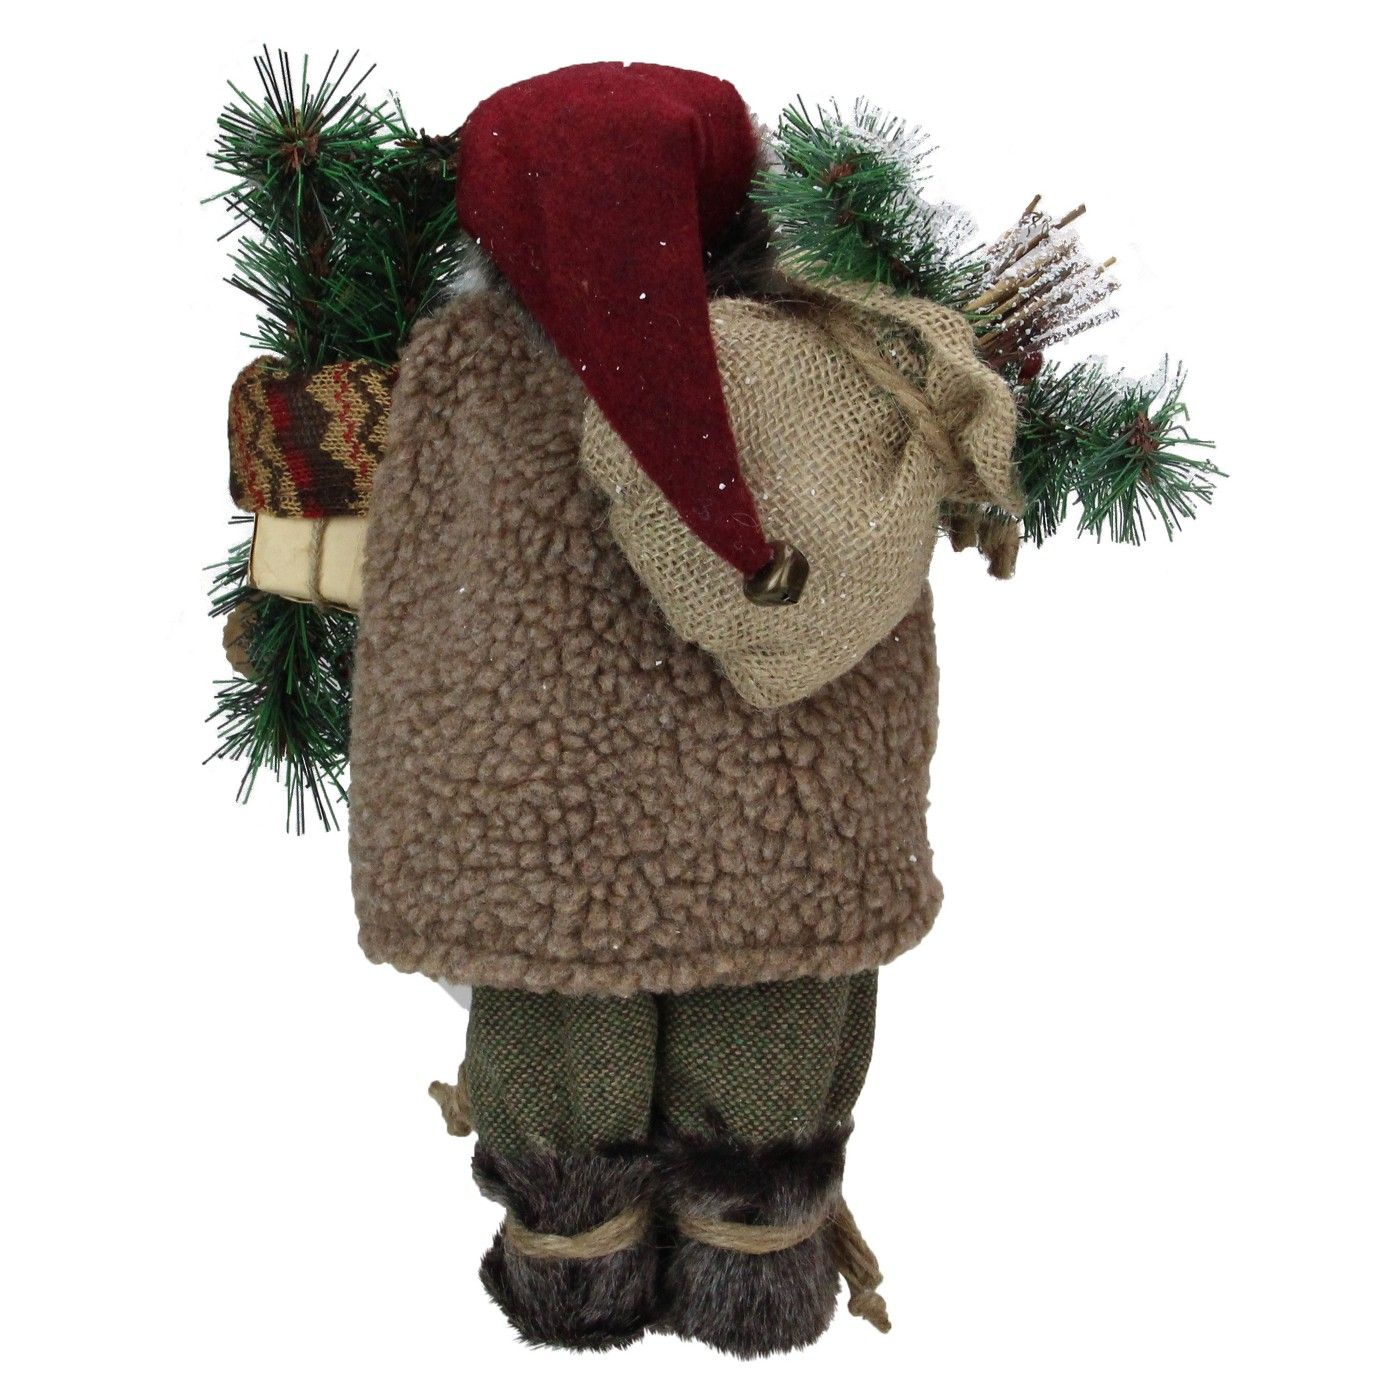 Northlight 12 Country Rustic Standing Santa Claus Christmas Figure Affiliate Country Ad Rustic Northlight Rustic Country Christmas Santa Claus